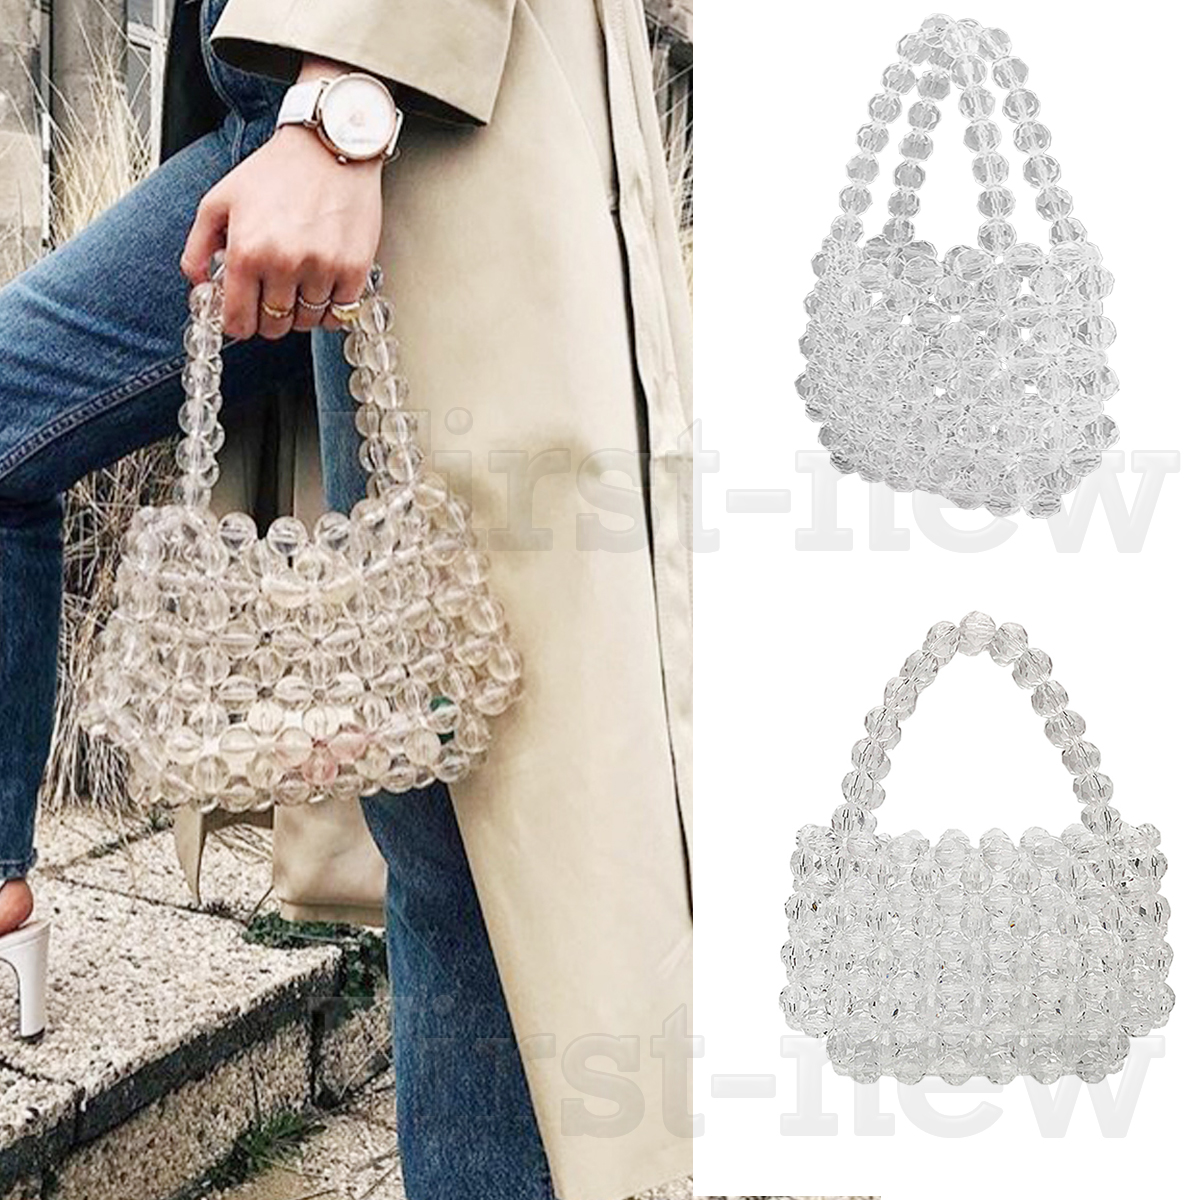 bceffab59f Details about 100% Handmade Acrylic Beaded Bag Clear Crystal Ladies Clutch  Bag Weave Handbags